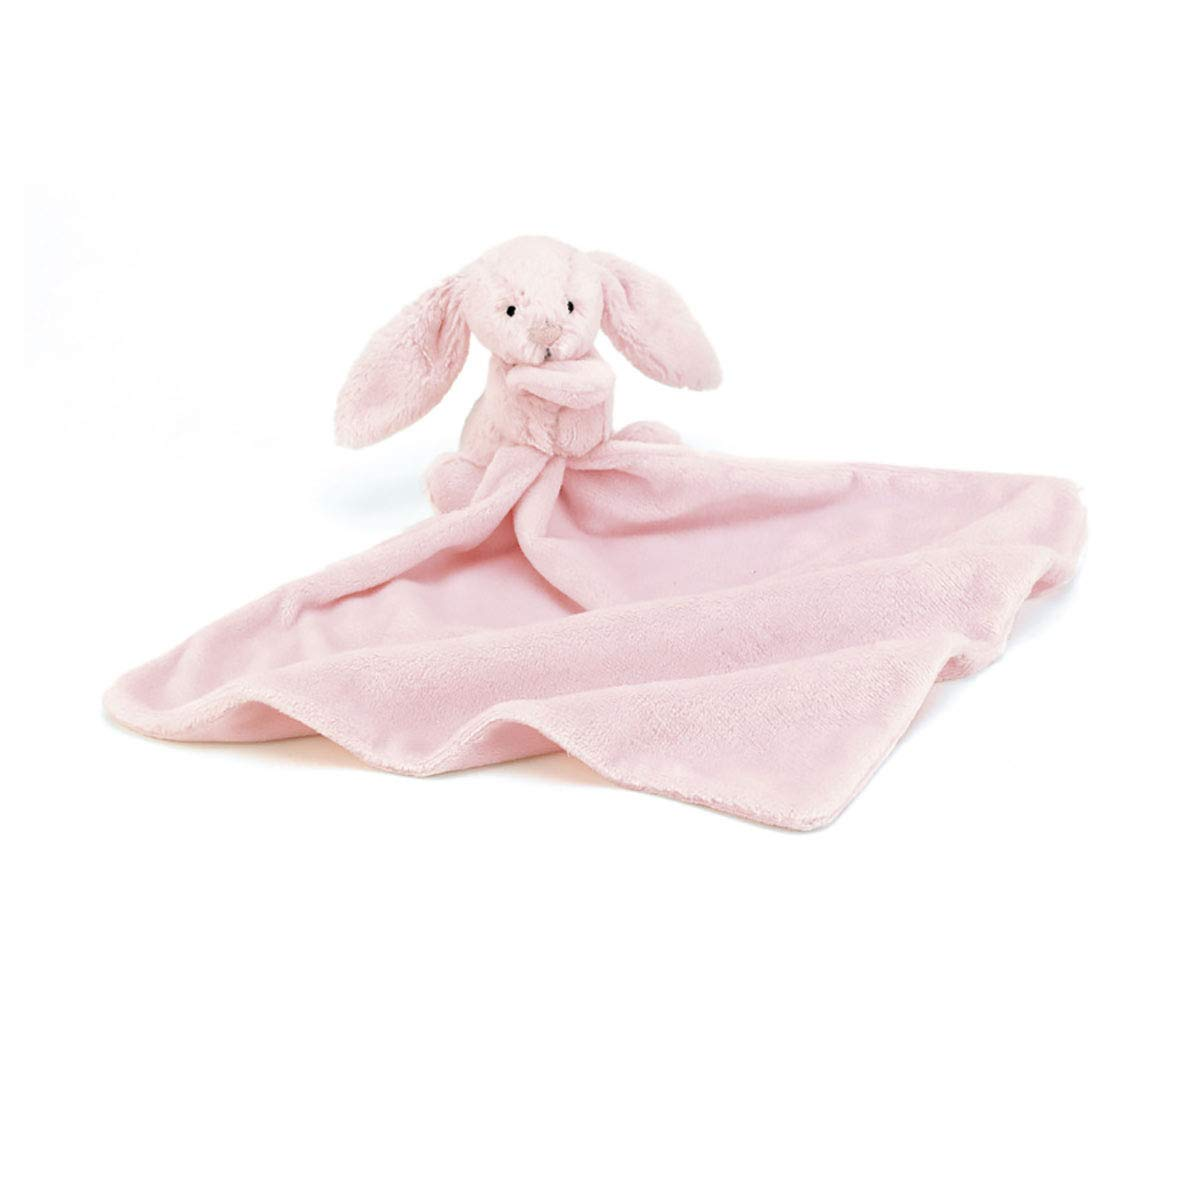 Jellycat Bashful Pink Bunny Baby Security Blanket